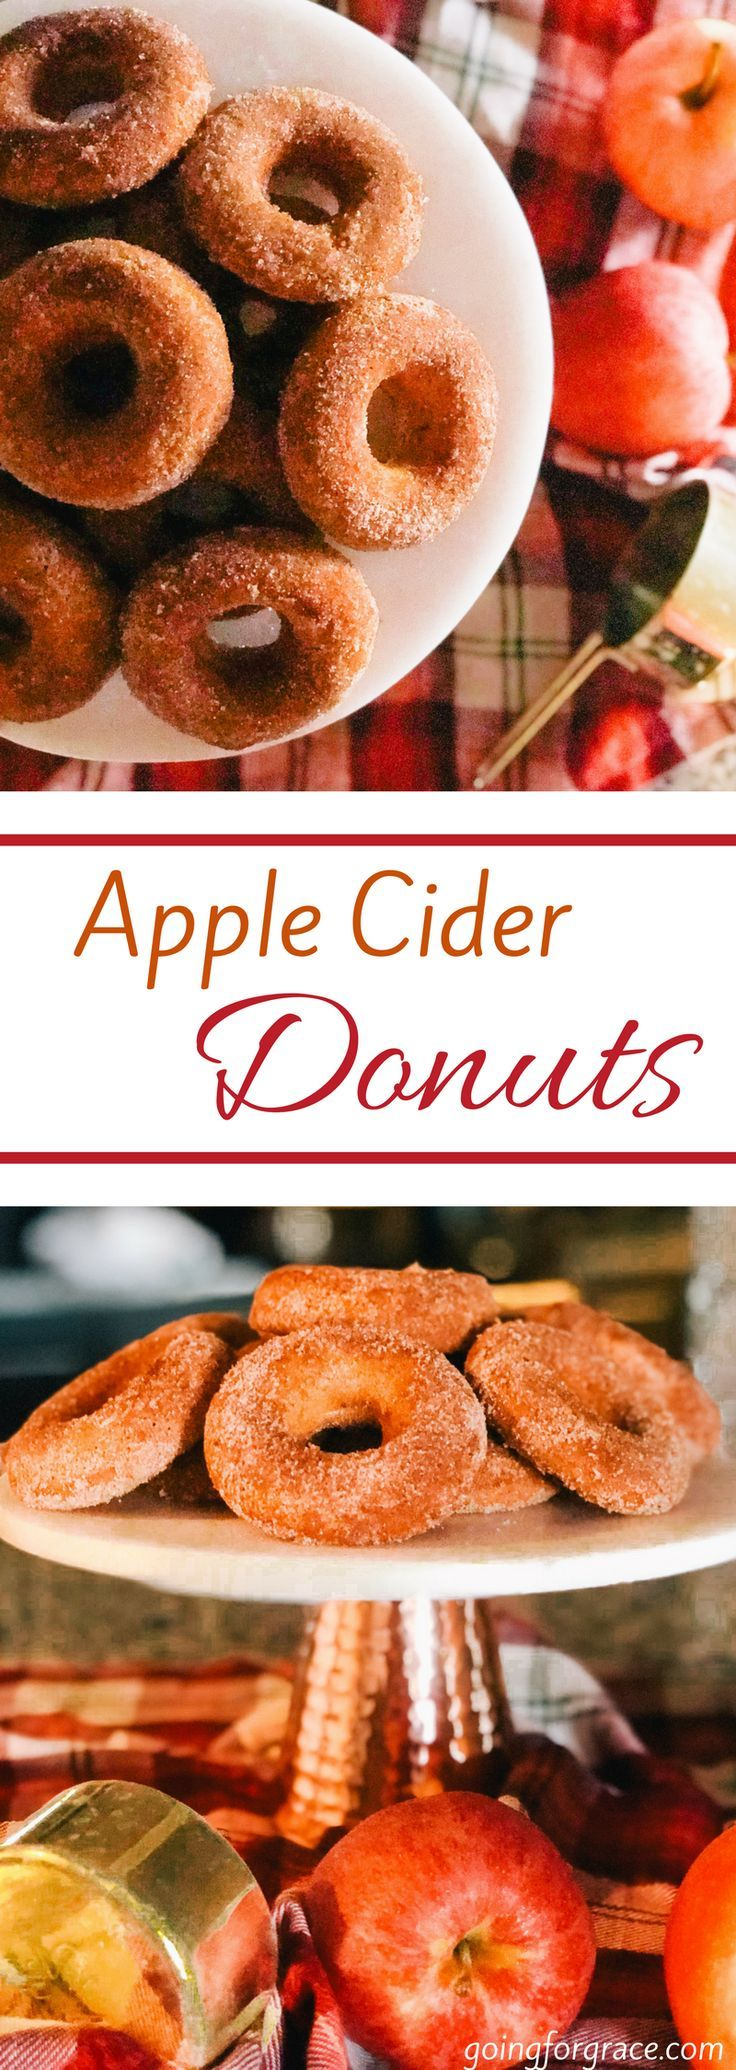 An easy and insanely delicious Apple Cider Donut Recipe! Apple cider donuts dipped in a cinnamon nutmeg sugary topping! Perfect for fall breakfast, brunch, or late night snack! Donut recipe, fall recipe, thanksgiving recipe, apple cider recipe